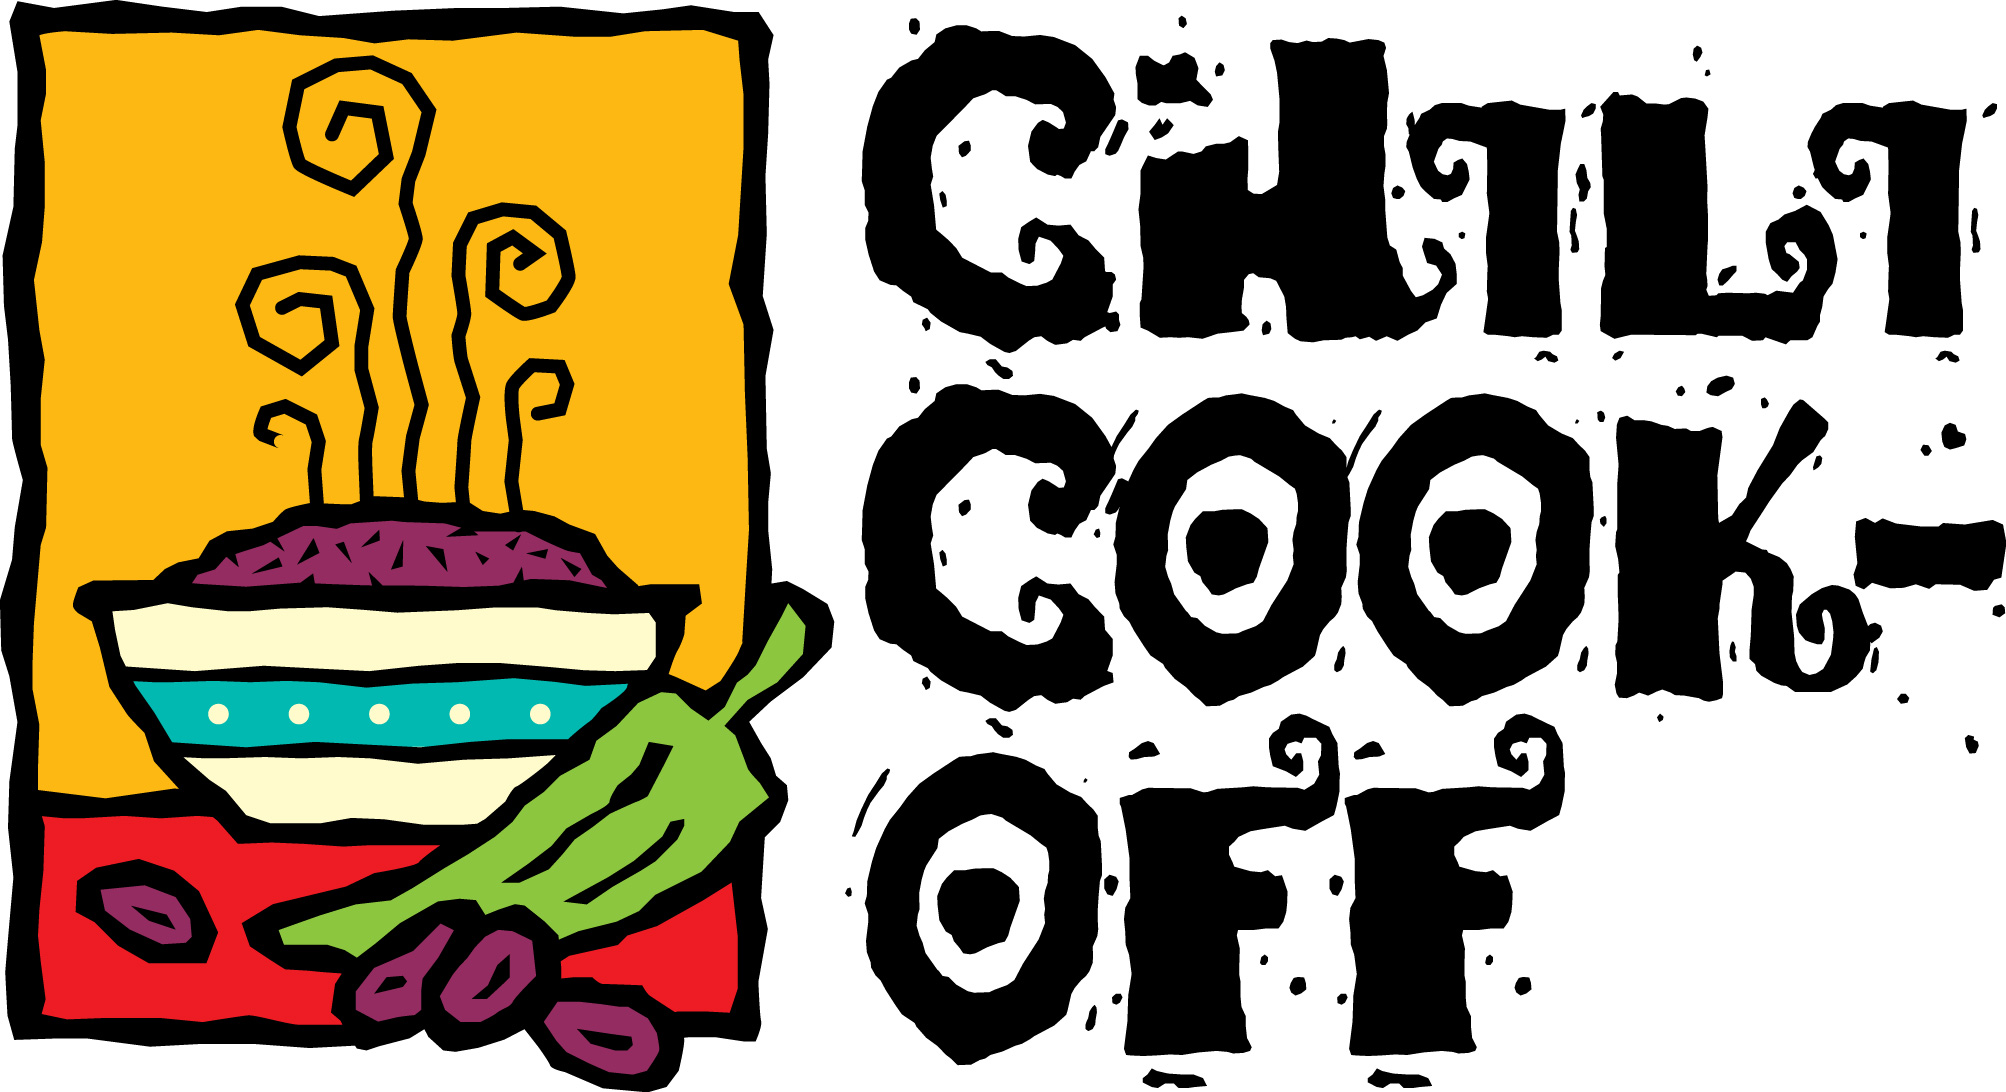 Chili Cook Off Borders Clipart ... A Variety Of Chili Recipes .